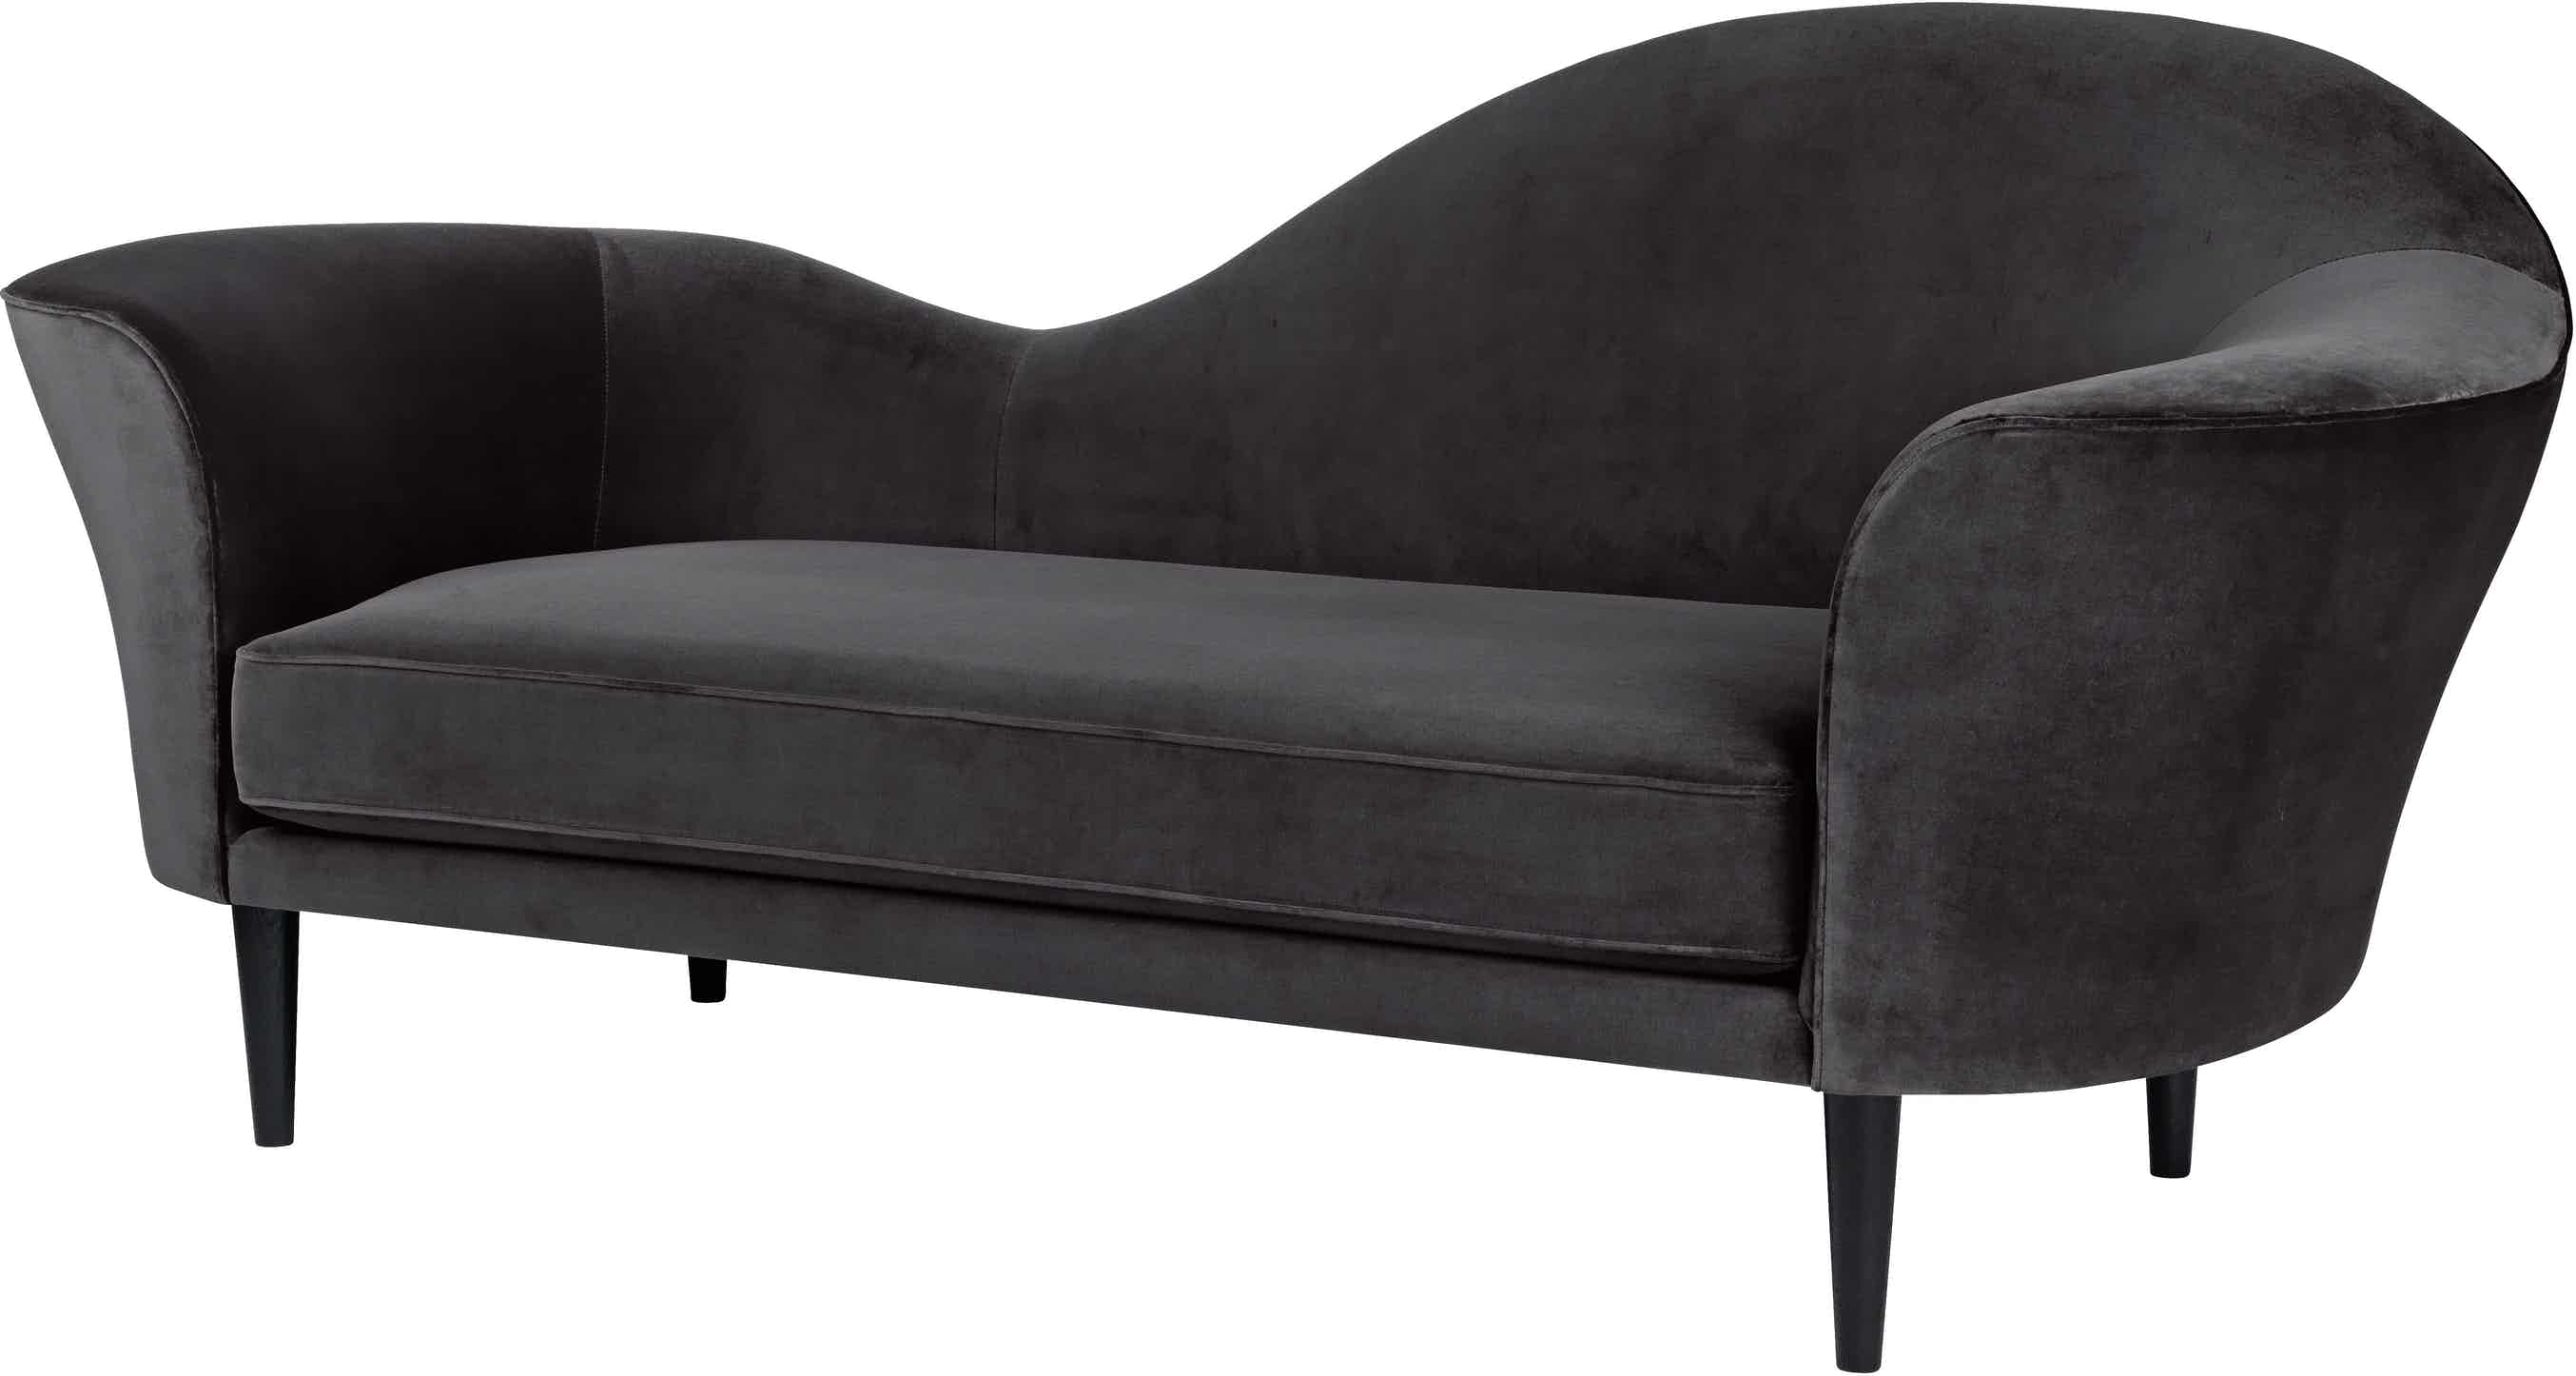 Gubi Grand Piano Sofa Black Angle Haute Living